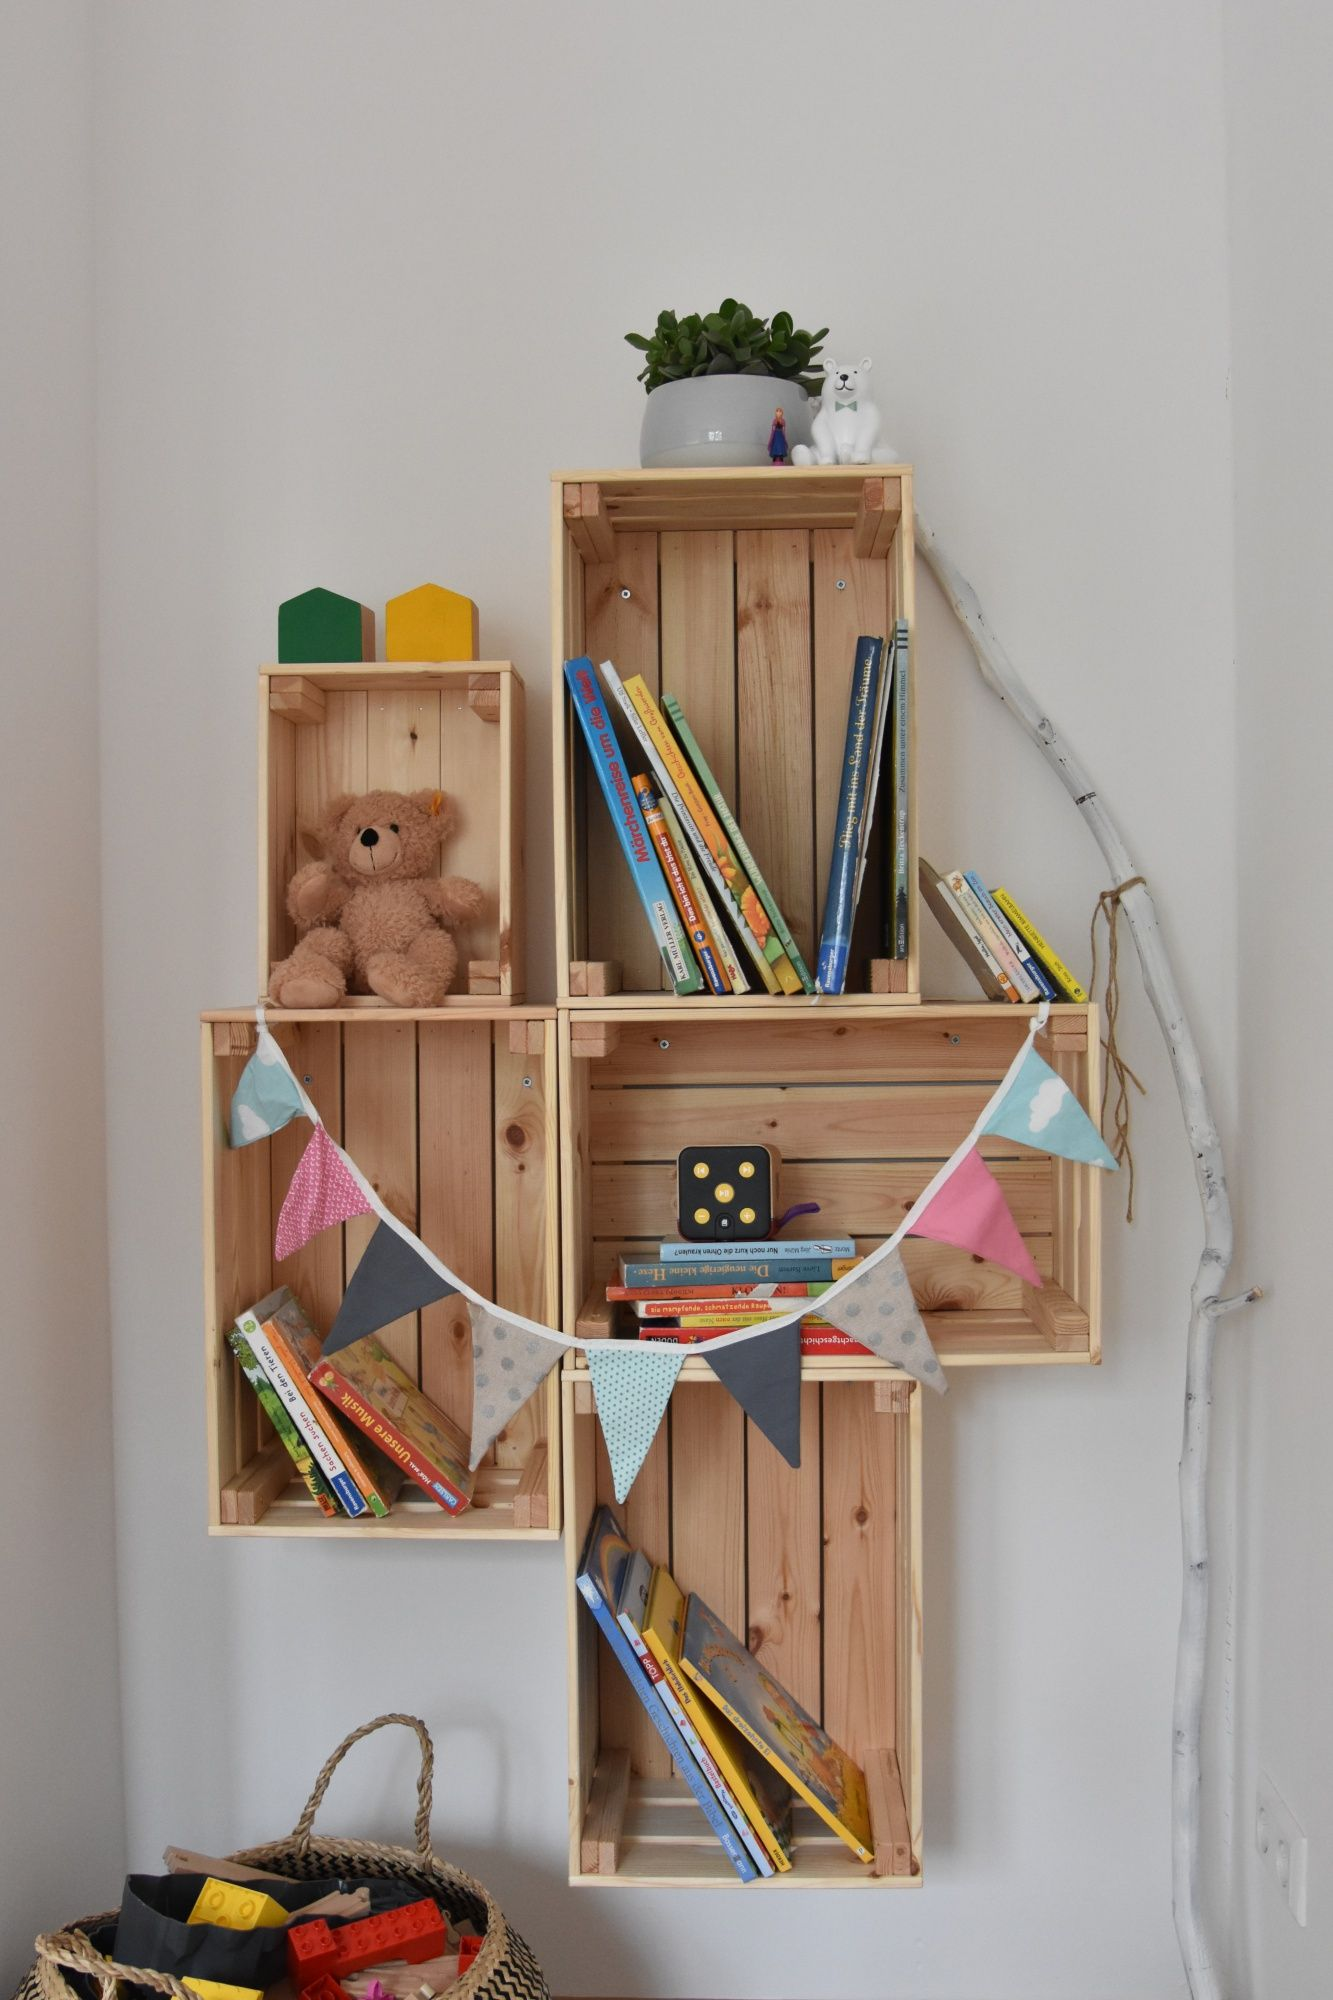 DIY Regal aus Holz Bücherregal kinderzimmer, Bücherregal